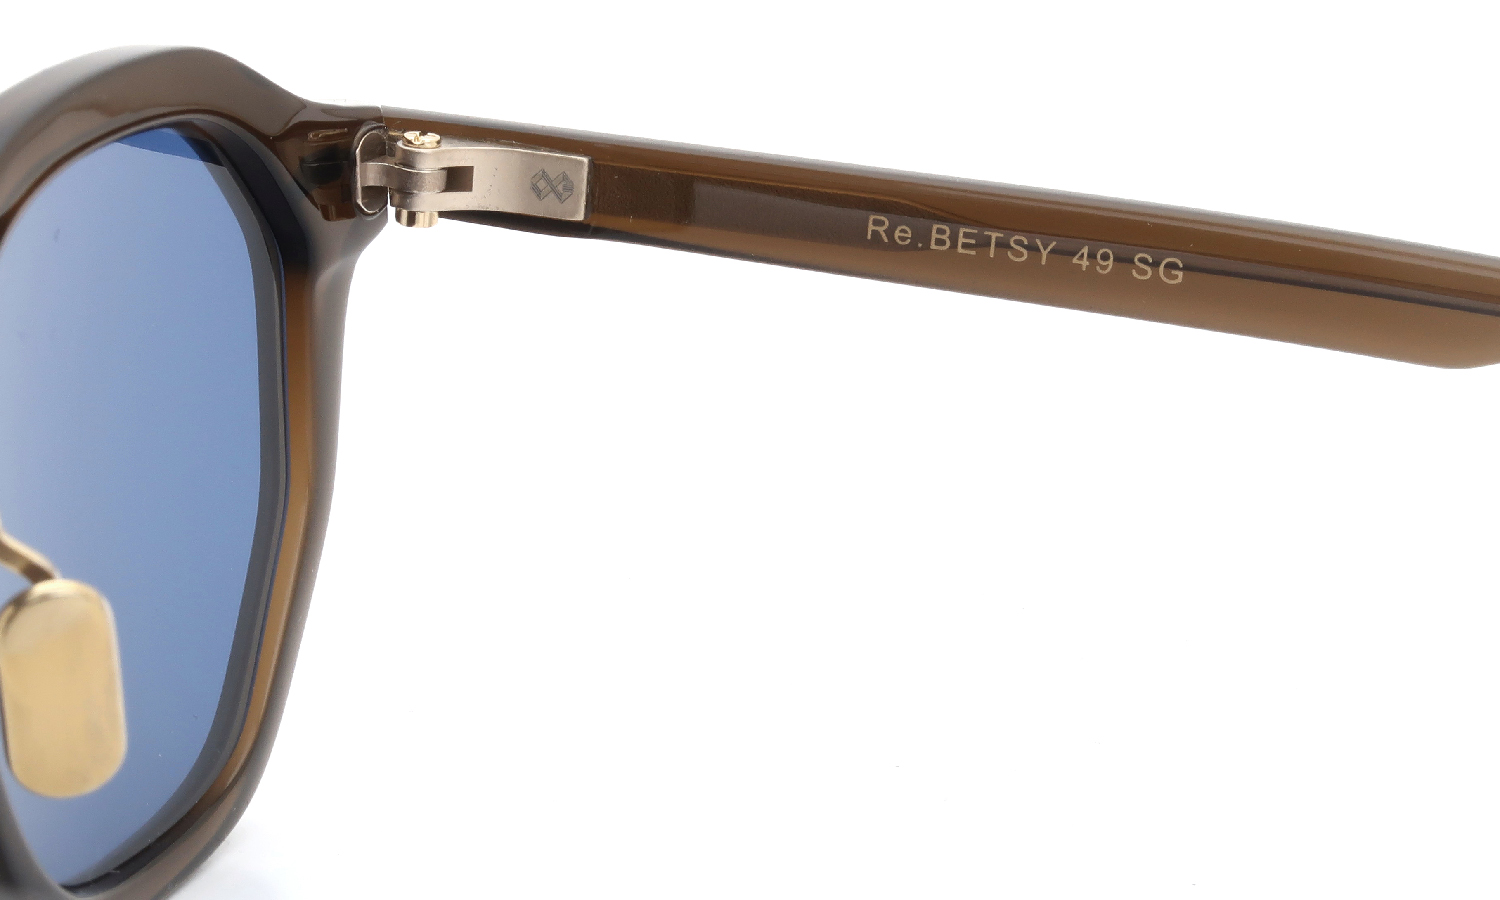 OG × OLIVER GOLDSMITH Re:BETSY 49 SG リ:ベッツィ 11